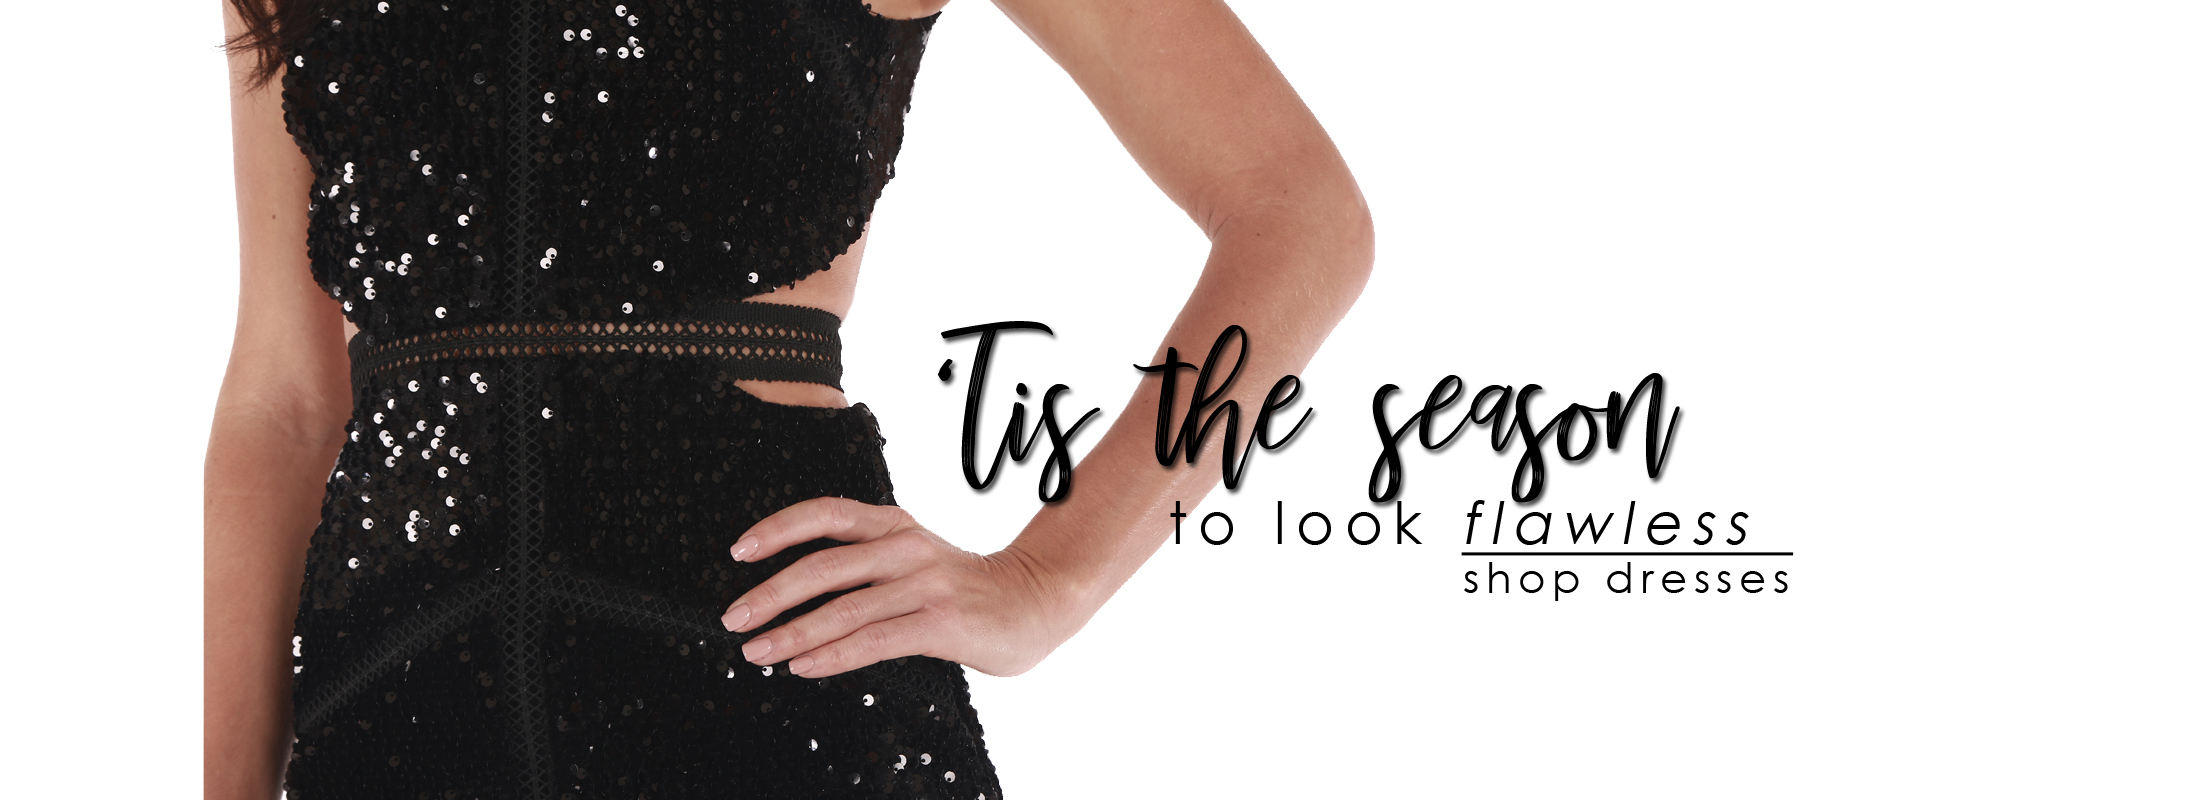 'tis the season to look flawless - shop dresses